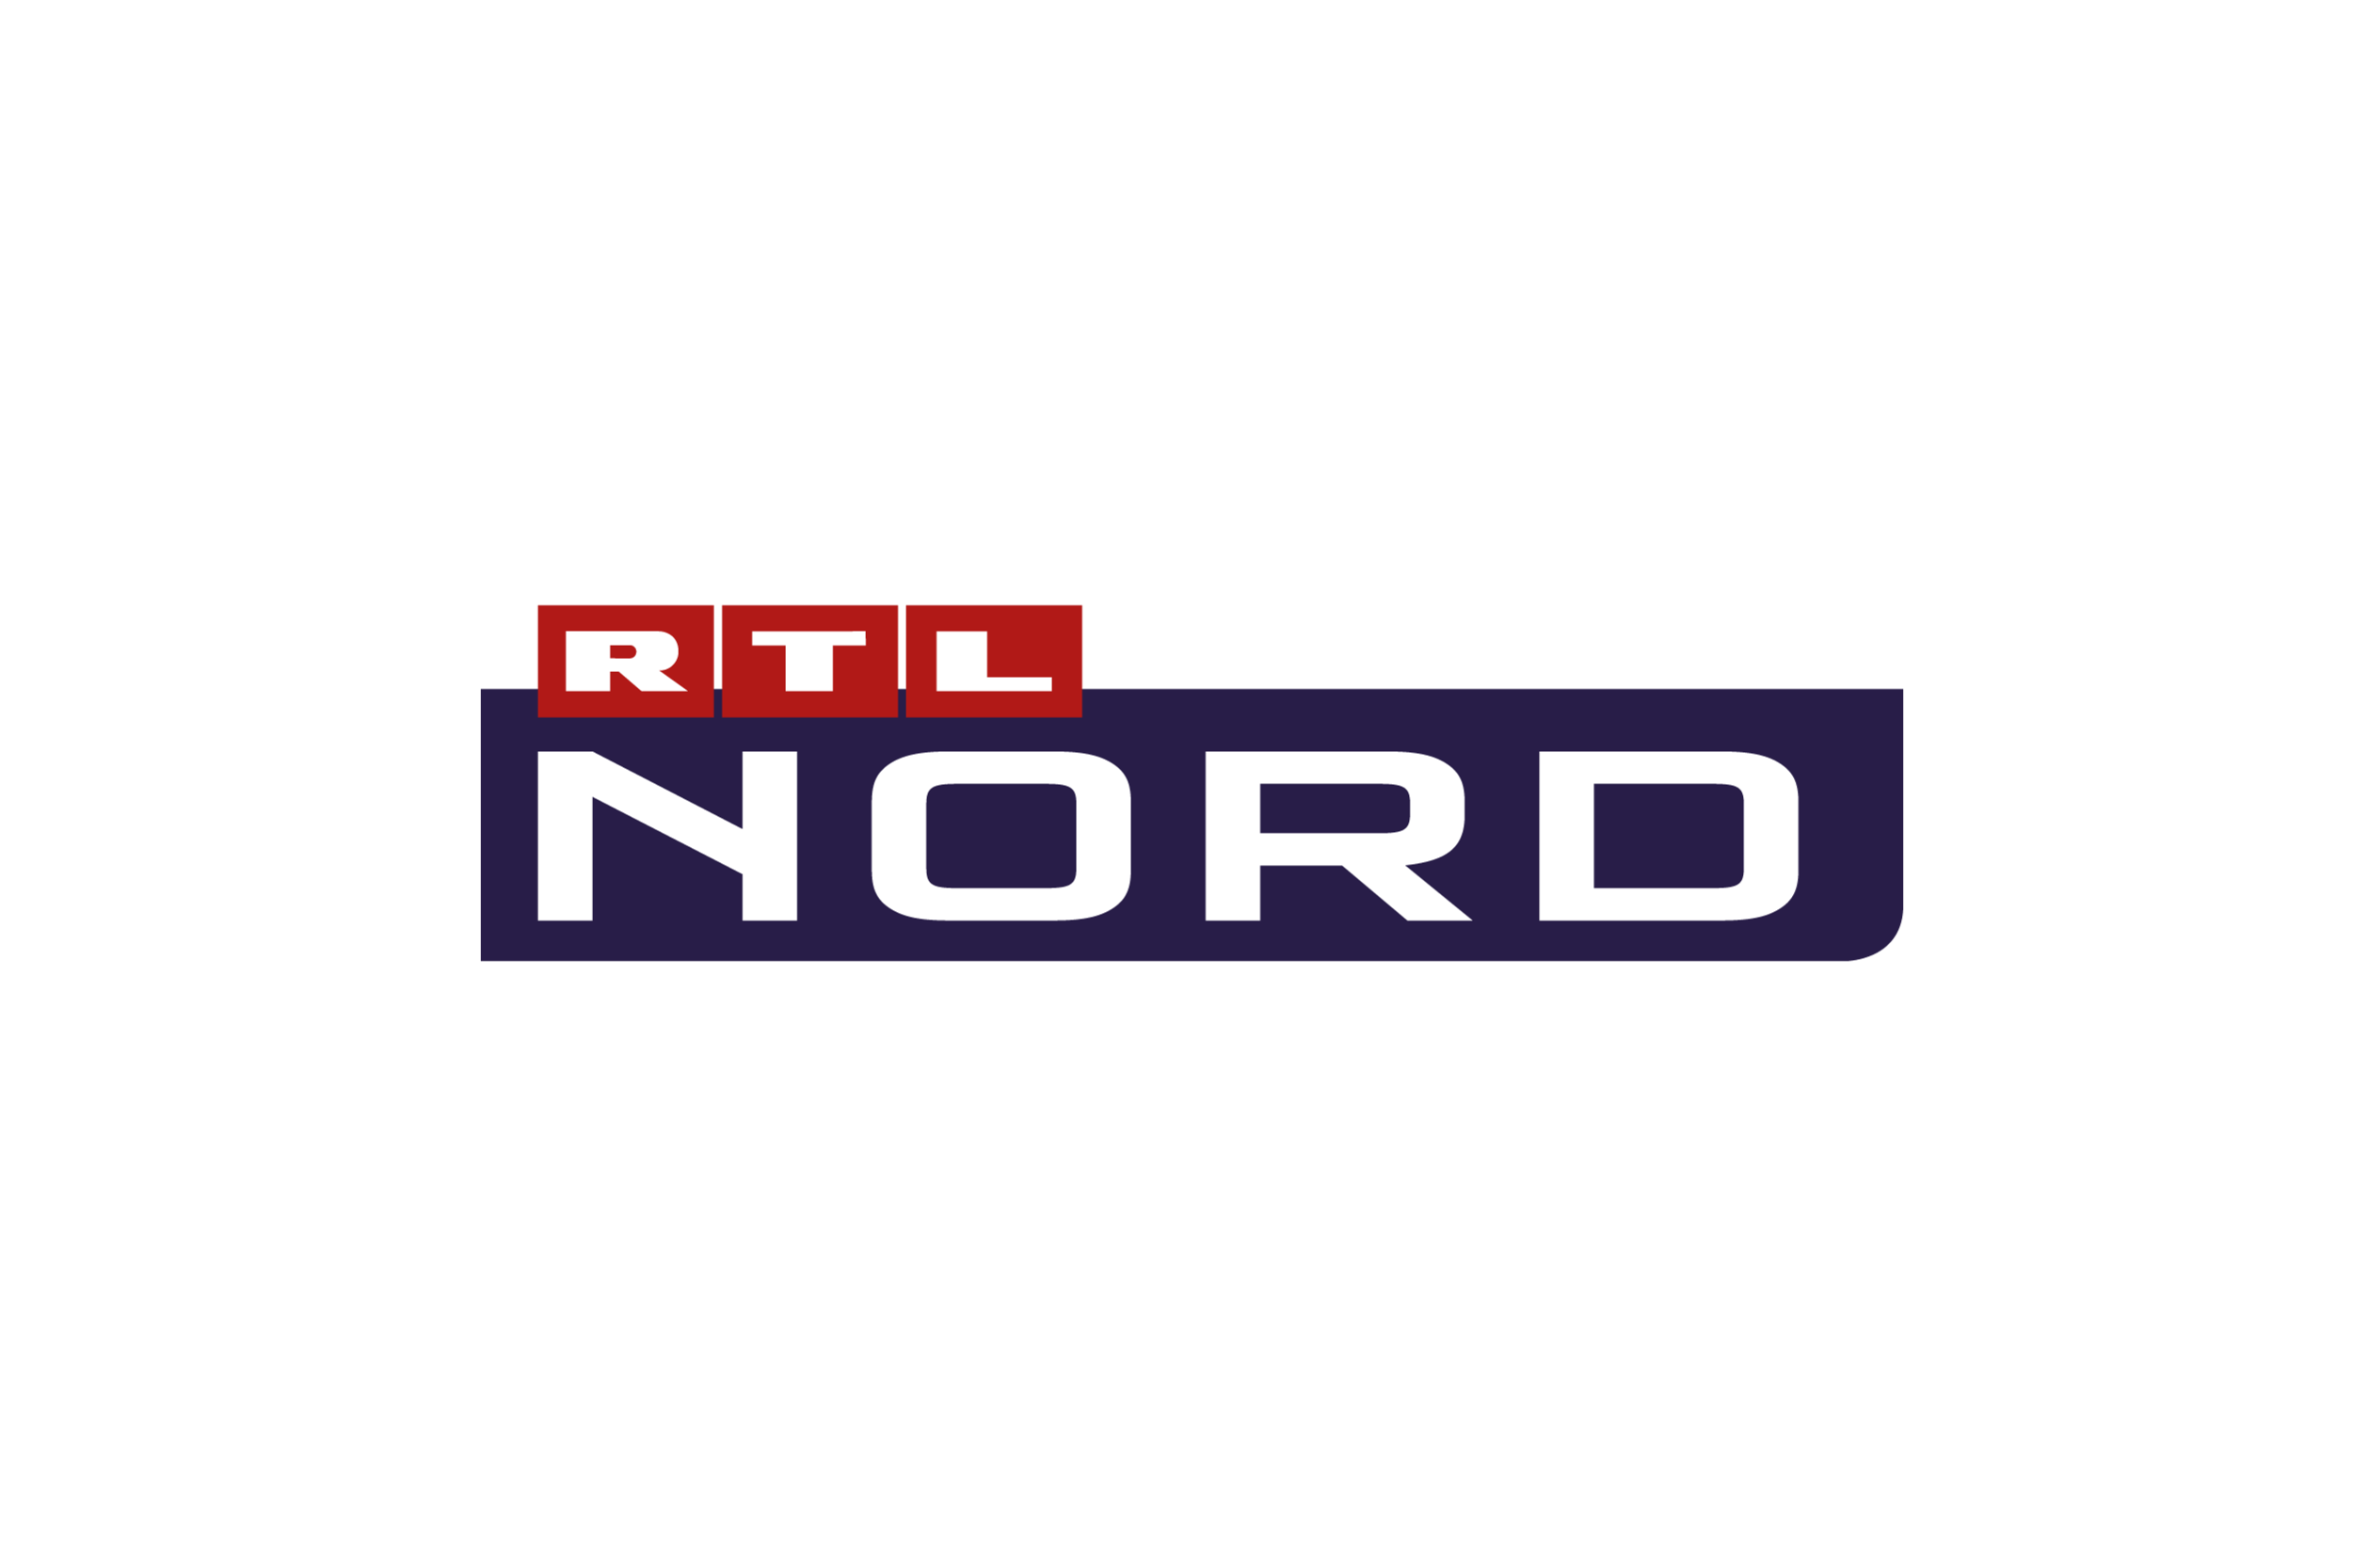 RTL_NORD.png